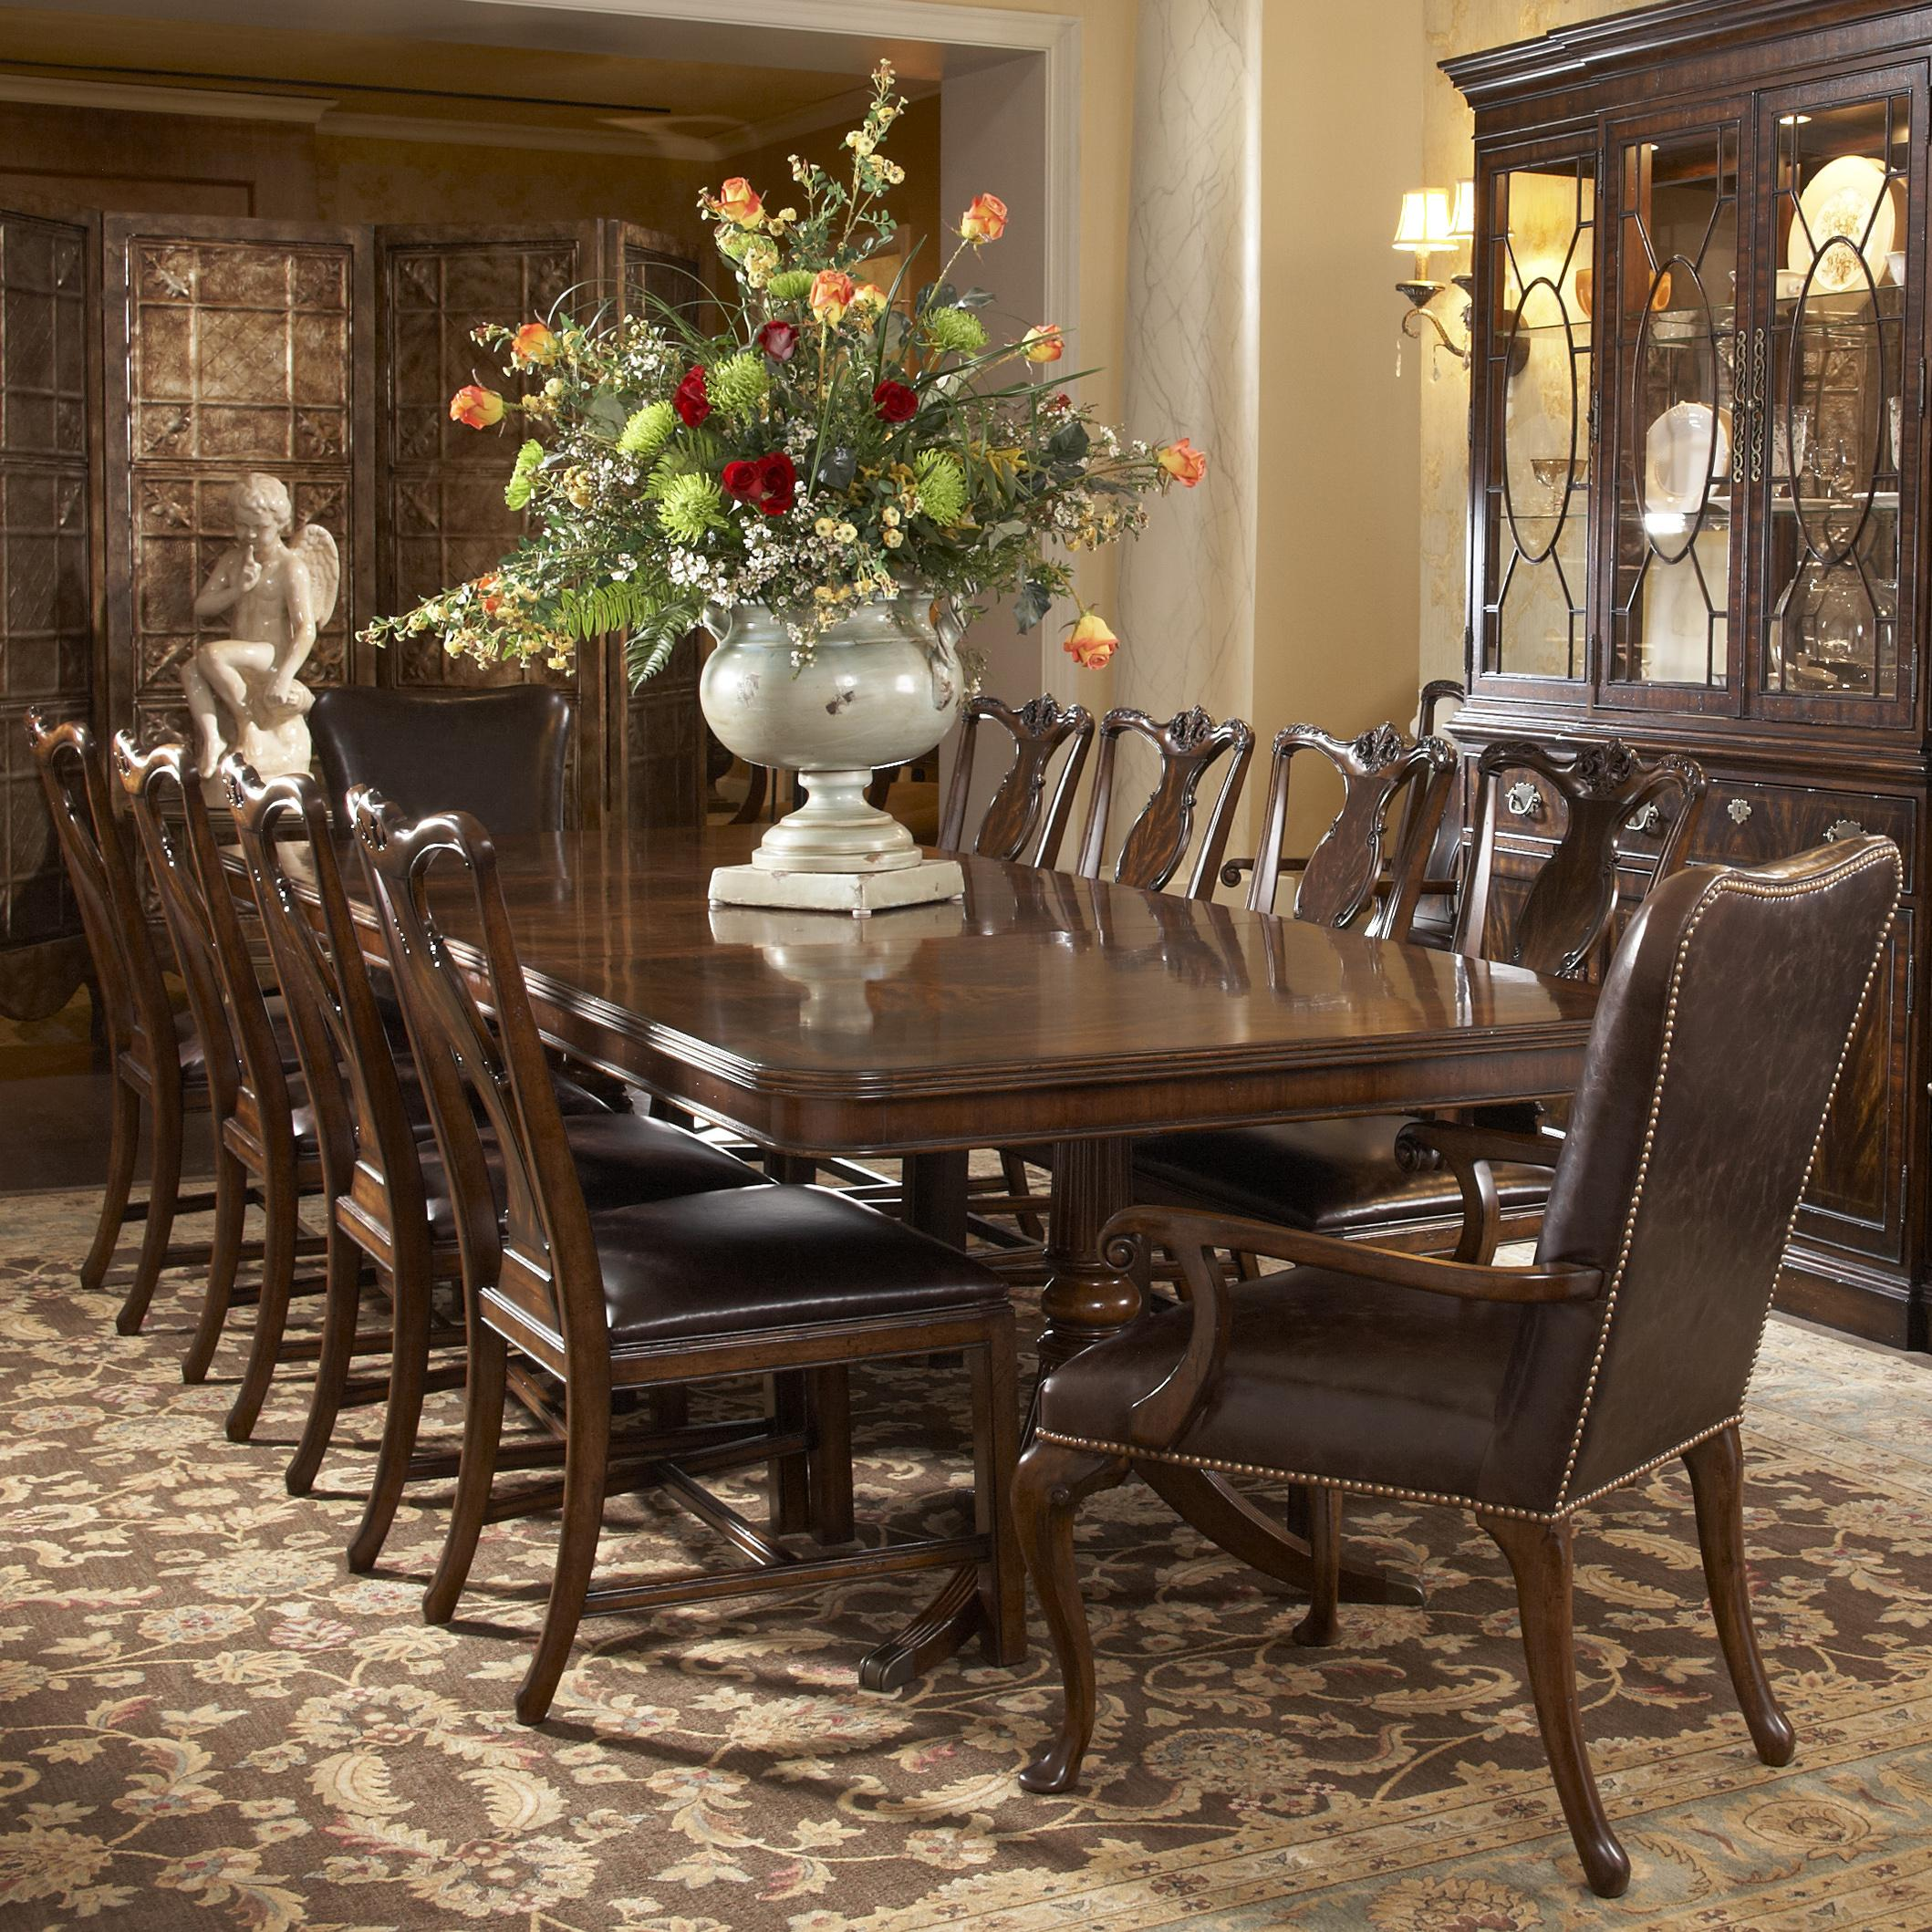 suede dining table chairs revolving chair in guwahati 11 piece double pedestal and splat back side